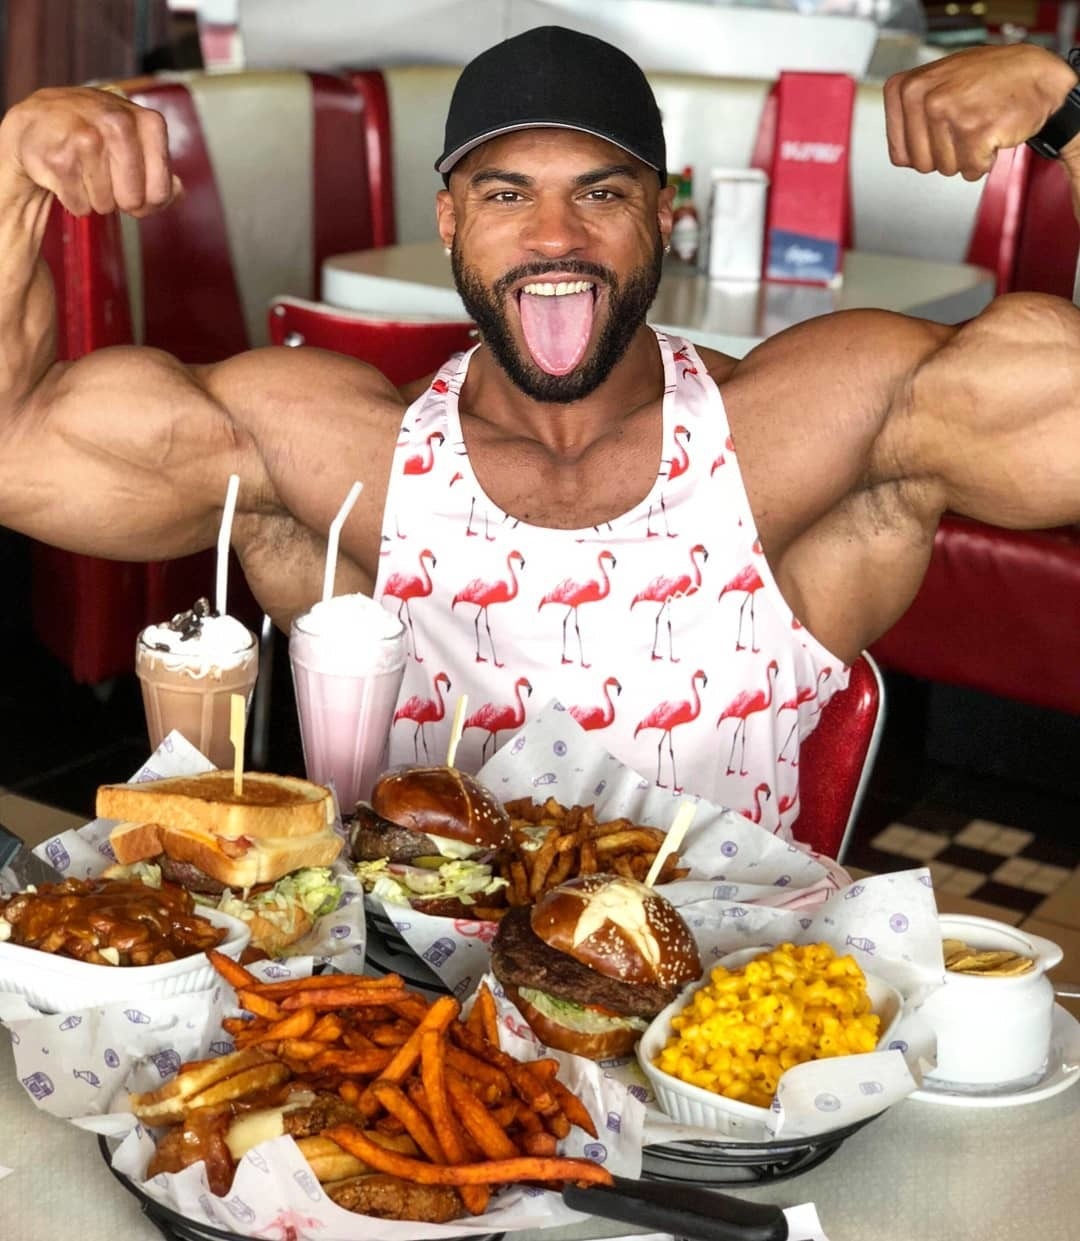 Henri Pierre Jukebox Burgers Fan Eating Burgers And Flexing